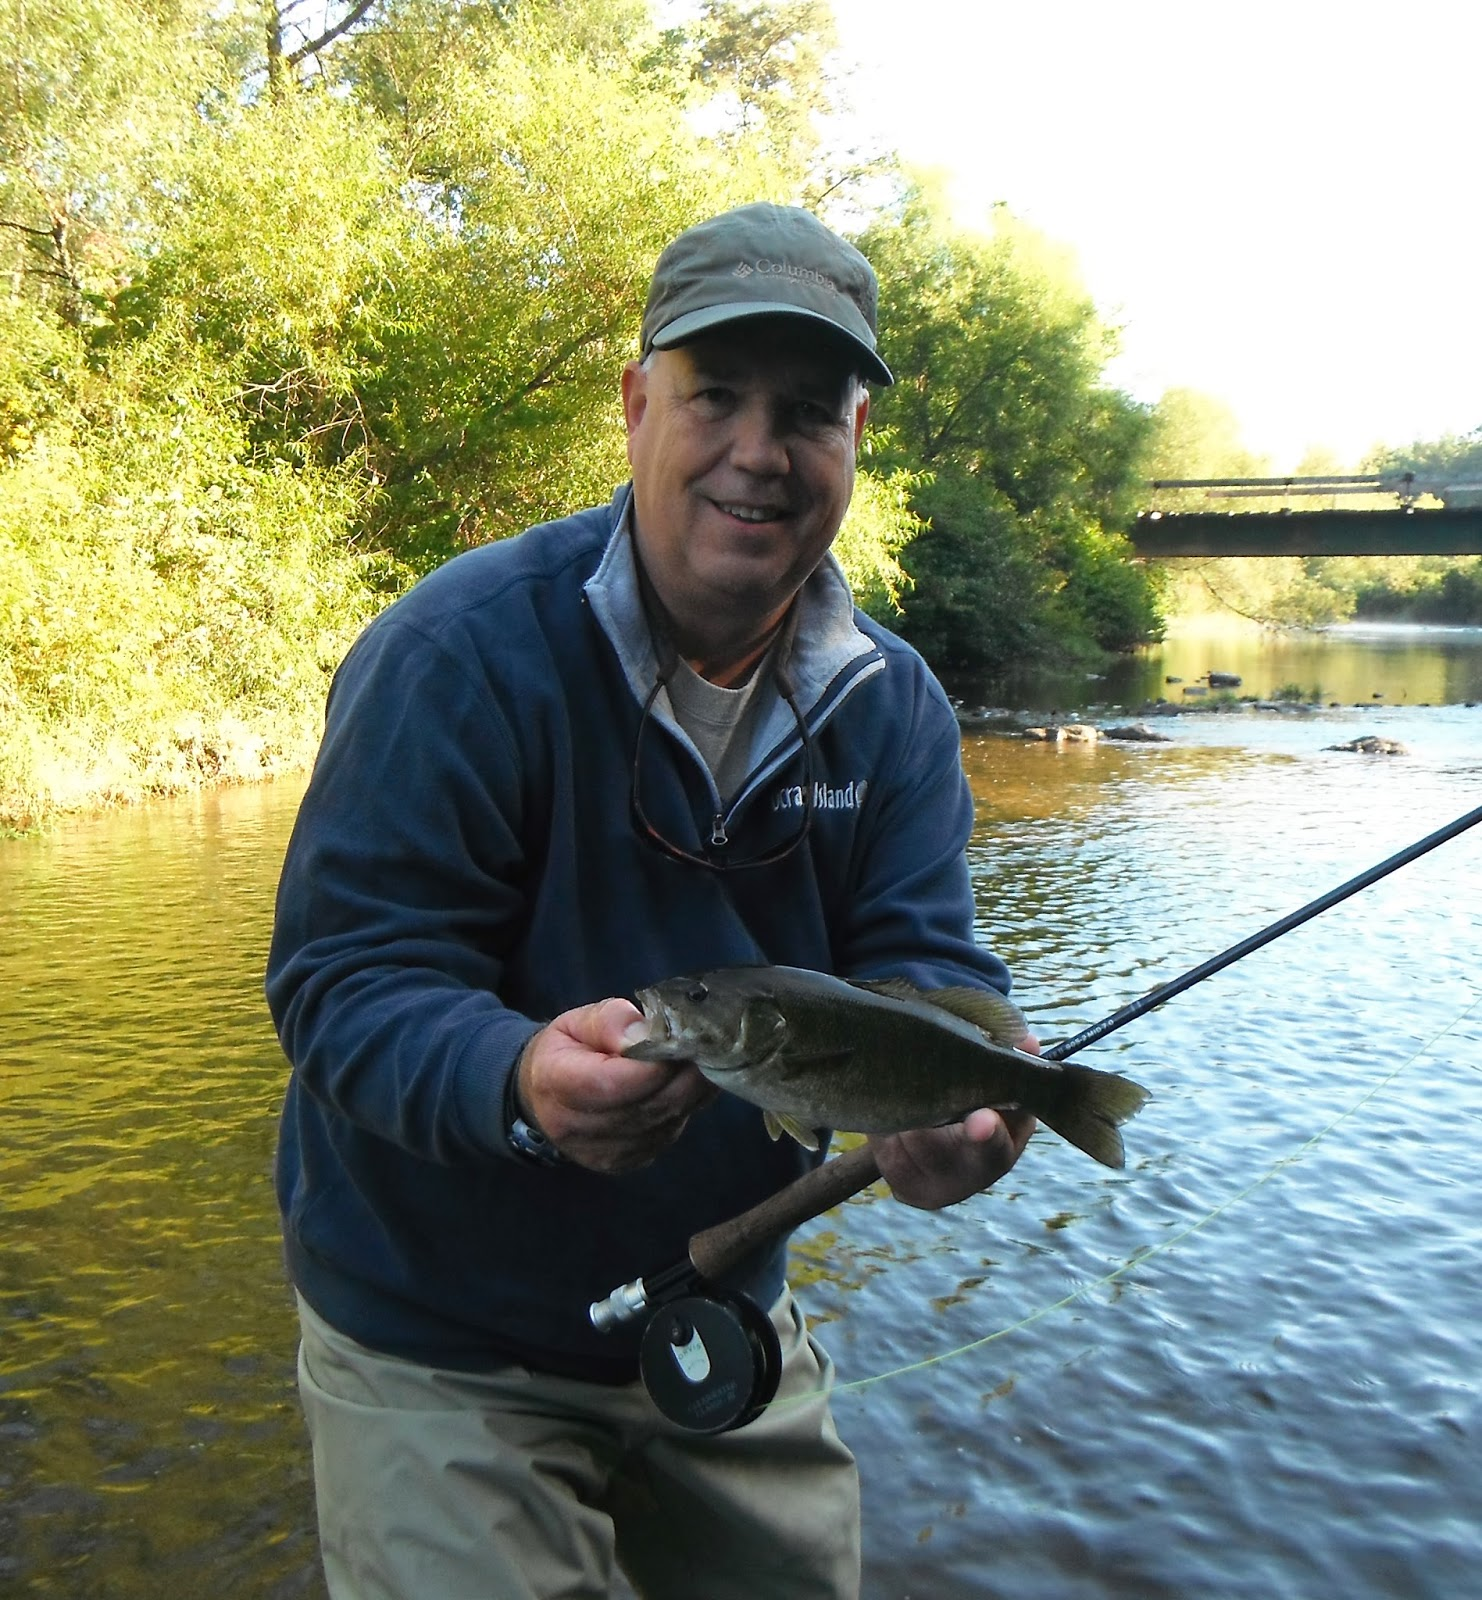 Western maryland fly fishing casselman river over the weekend for Trout fishing maryland